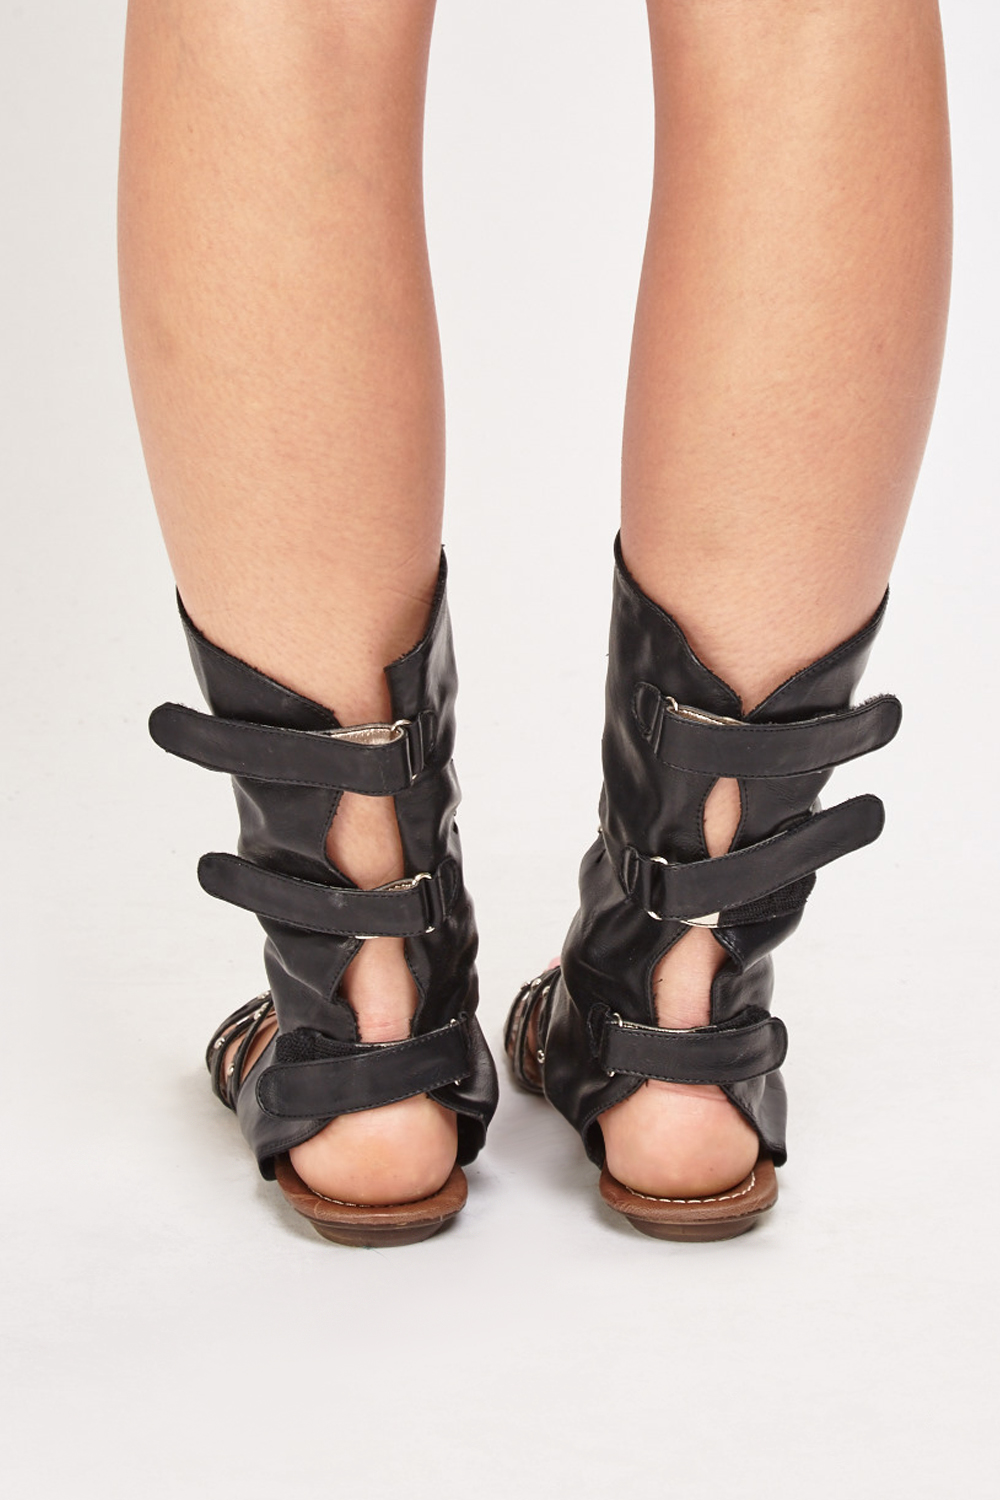 e1a9d3362e23 Faux Leather Detailed Flat Gladiator Sandals - Just £5